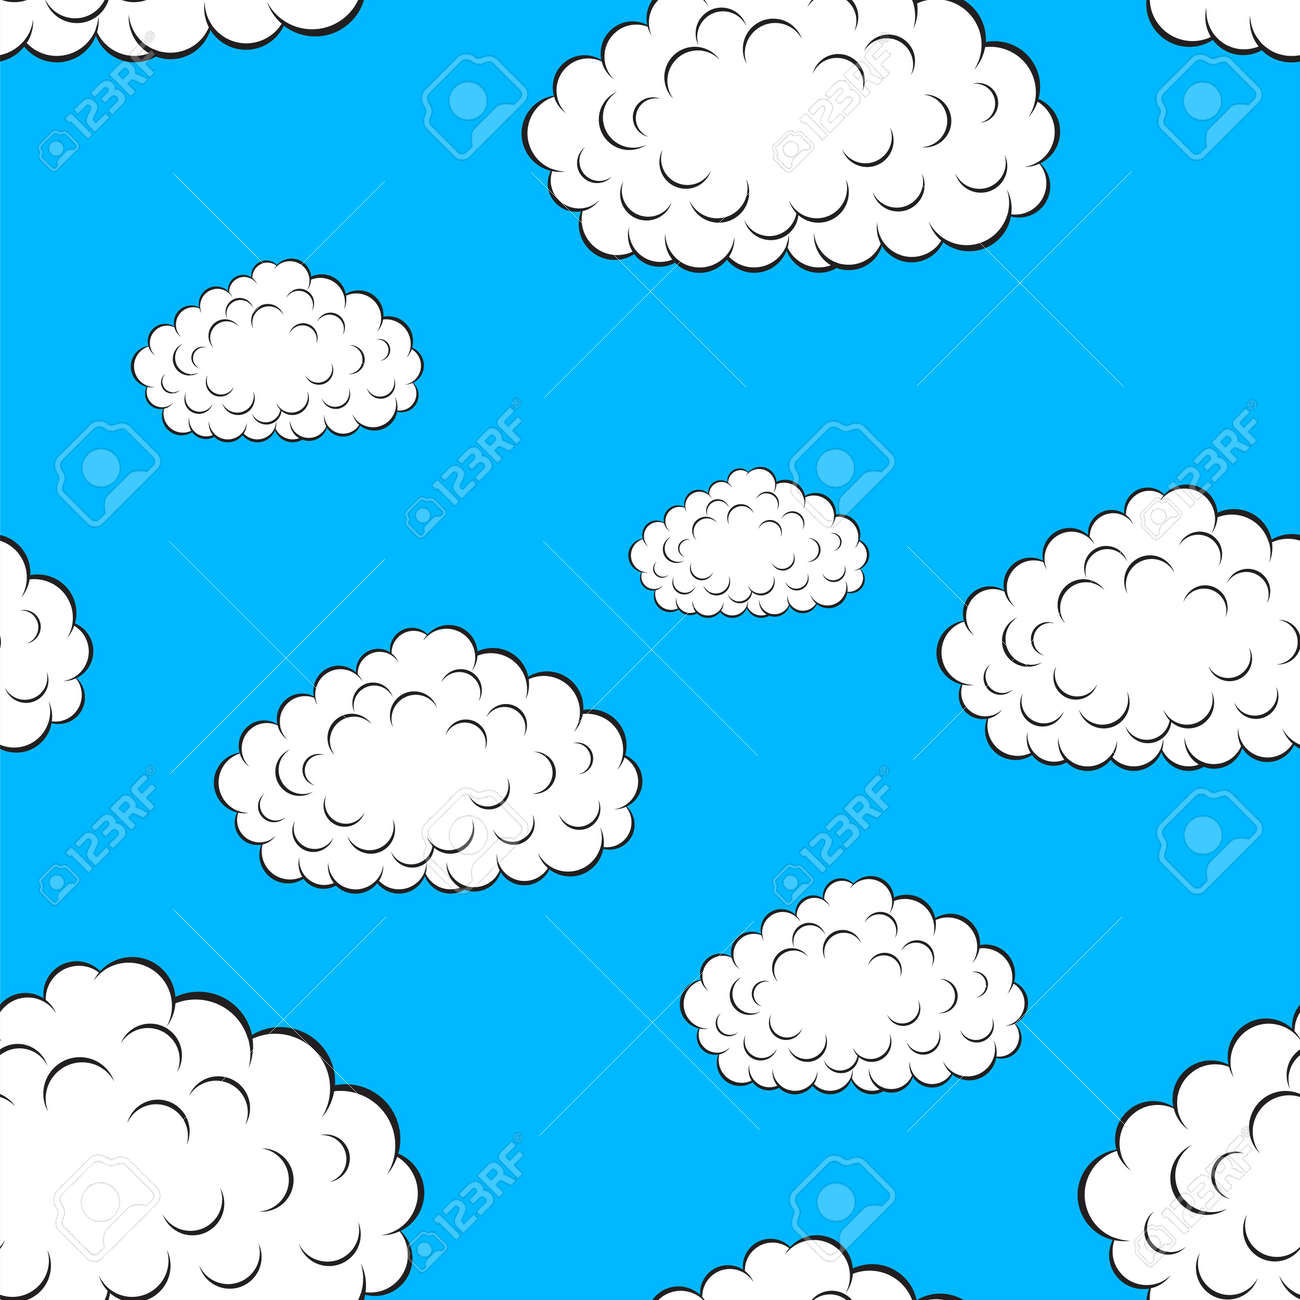 clouds seamless wallpaper, vector illustration Stock Vector - 16114293